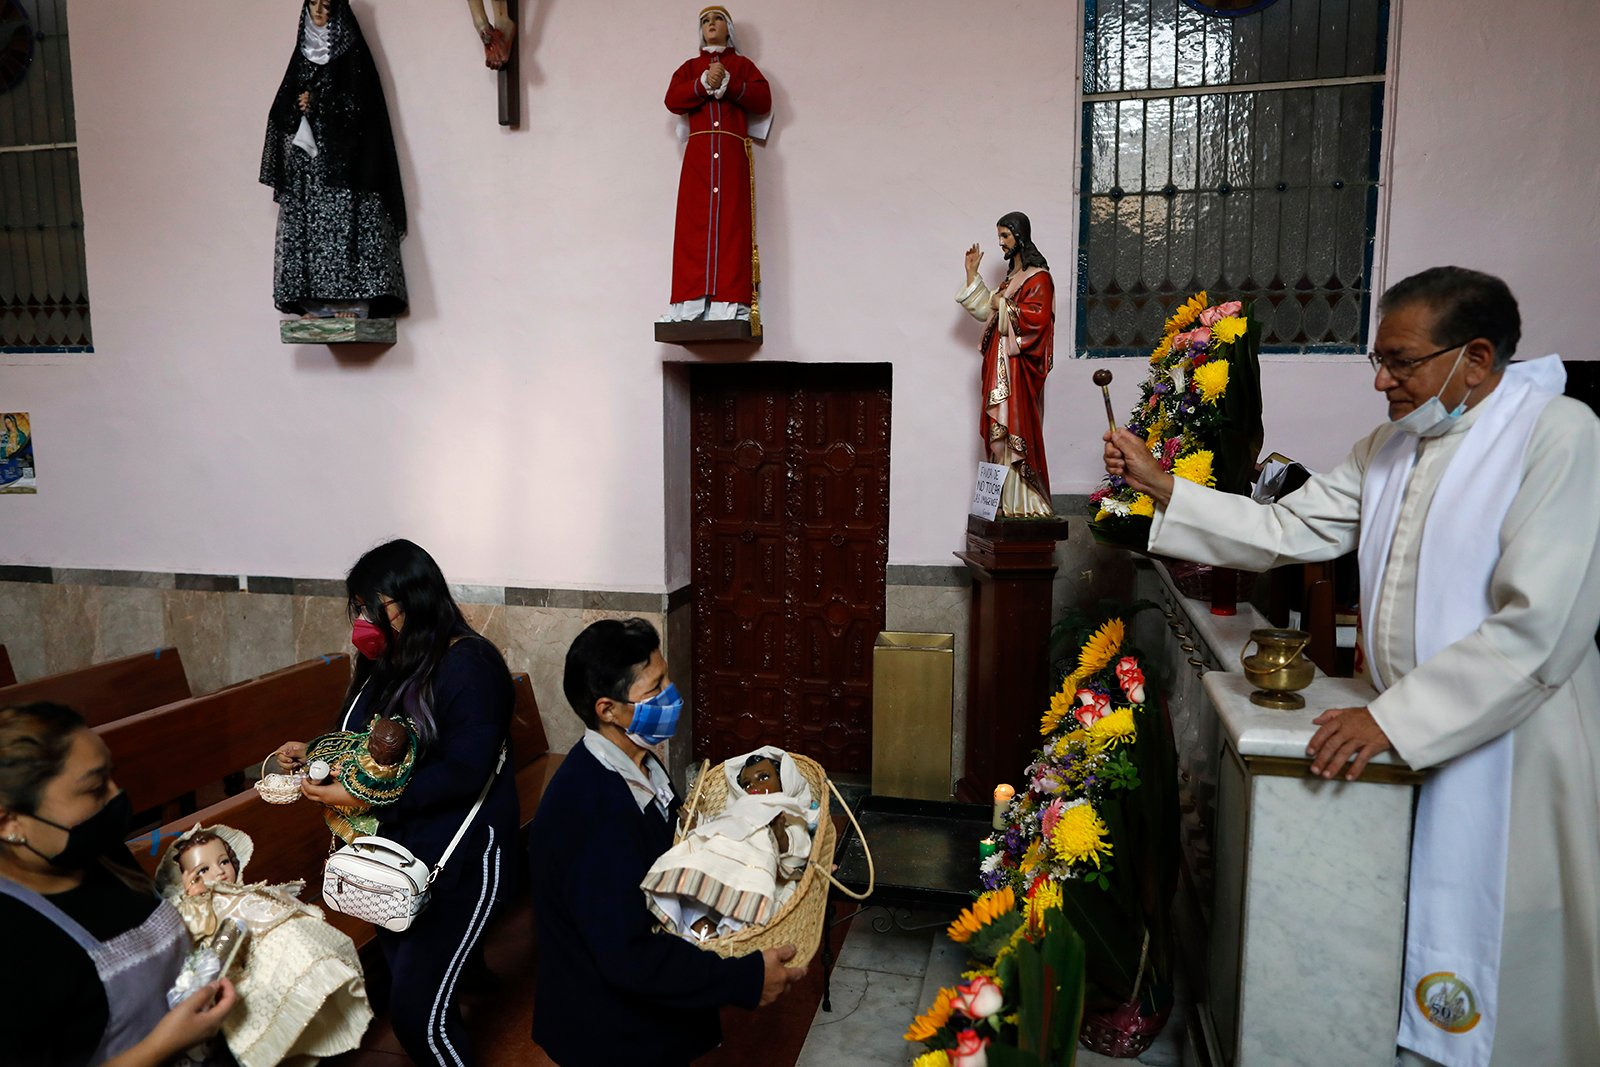 People have their baby Jesus figures blessed with holy water by Father Jose Jesus Arriaga Martinez at the Purification of Our Lady of Candlemas Chapel in Mexico City, Tuesday, Feb. 2, 2021. (AP Photo/Rebecca Blackwell)